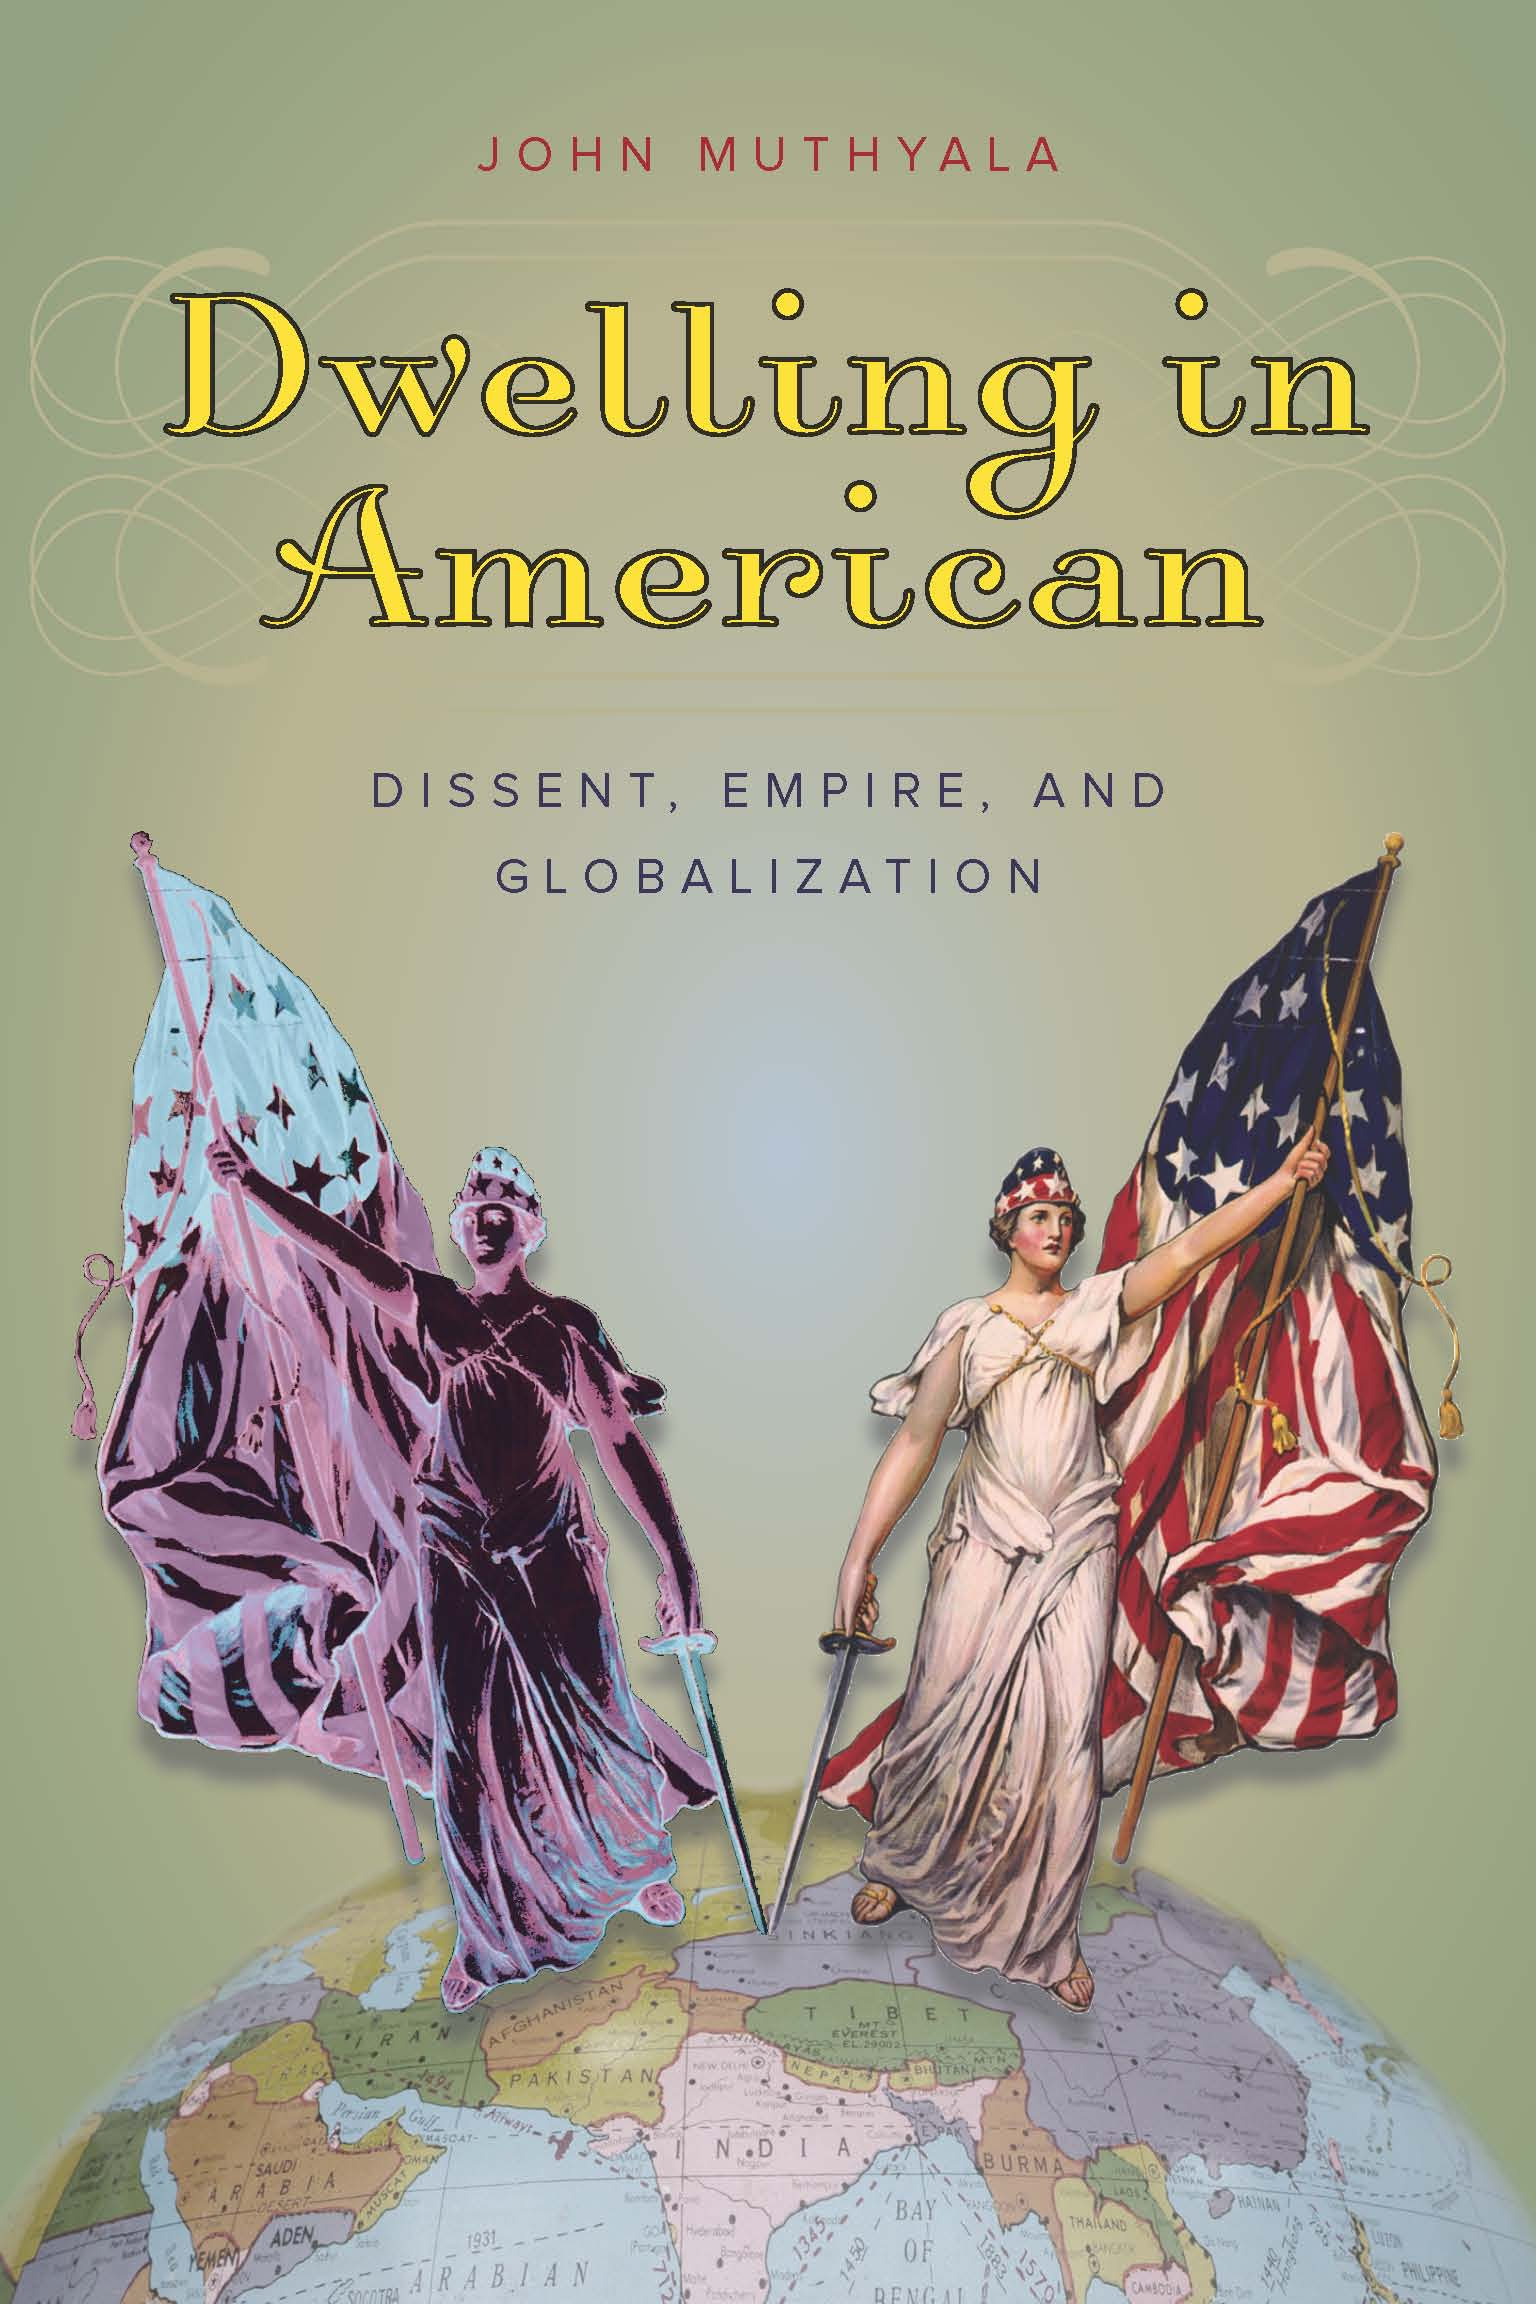 Dwelling in American cover